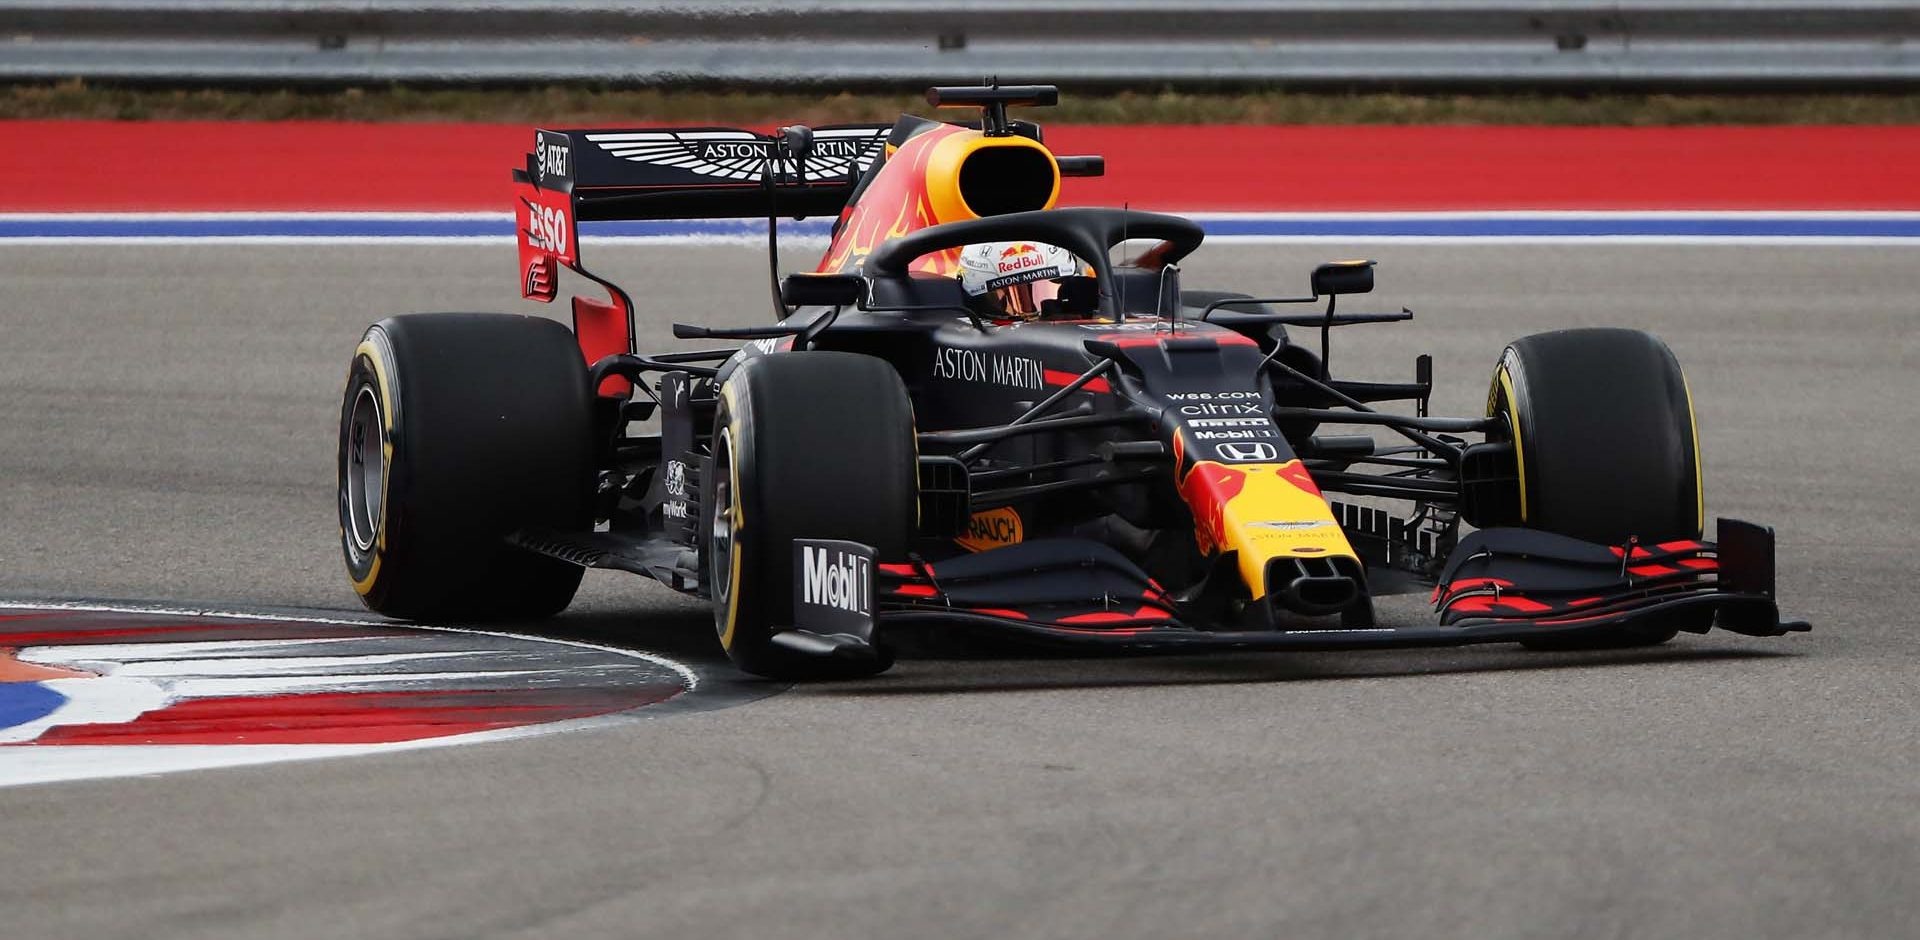 SOCHI, RUSSIA - SEPTEMBER 26: Max Verstappen of the Netherlands driving the (33) Aston Martin Red Bull Racing RB16 on track during qualifying ahead of the F1 Grand Prix of Russia at Sochi Autodrom on September 26, 2020 in Sochi, Russia. (Photo by Maxim Shemetov - Pool/Getty Images)